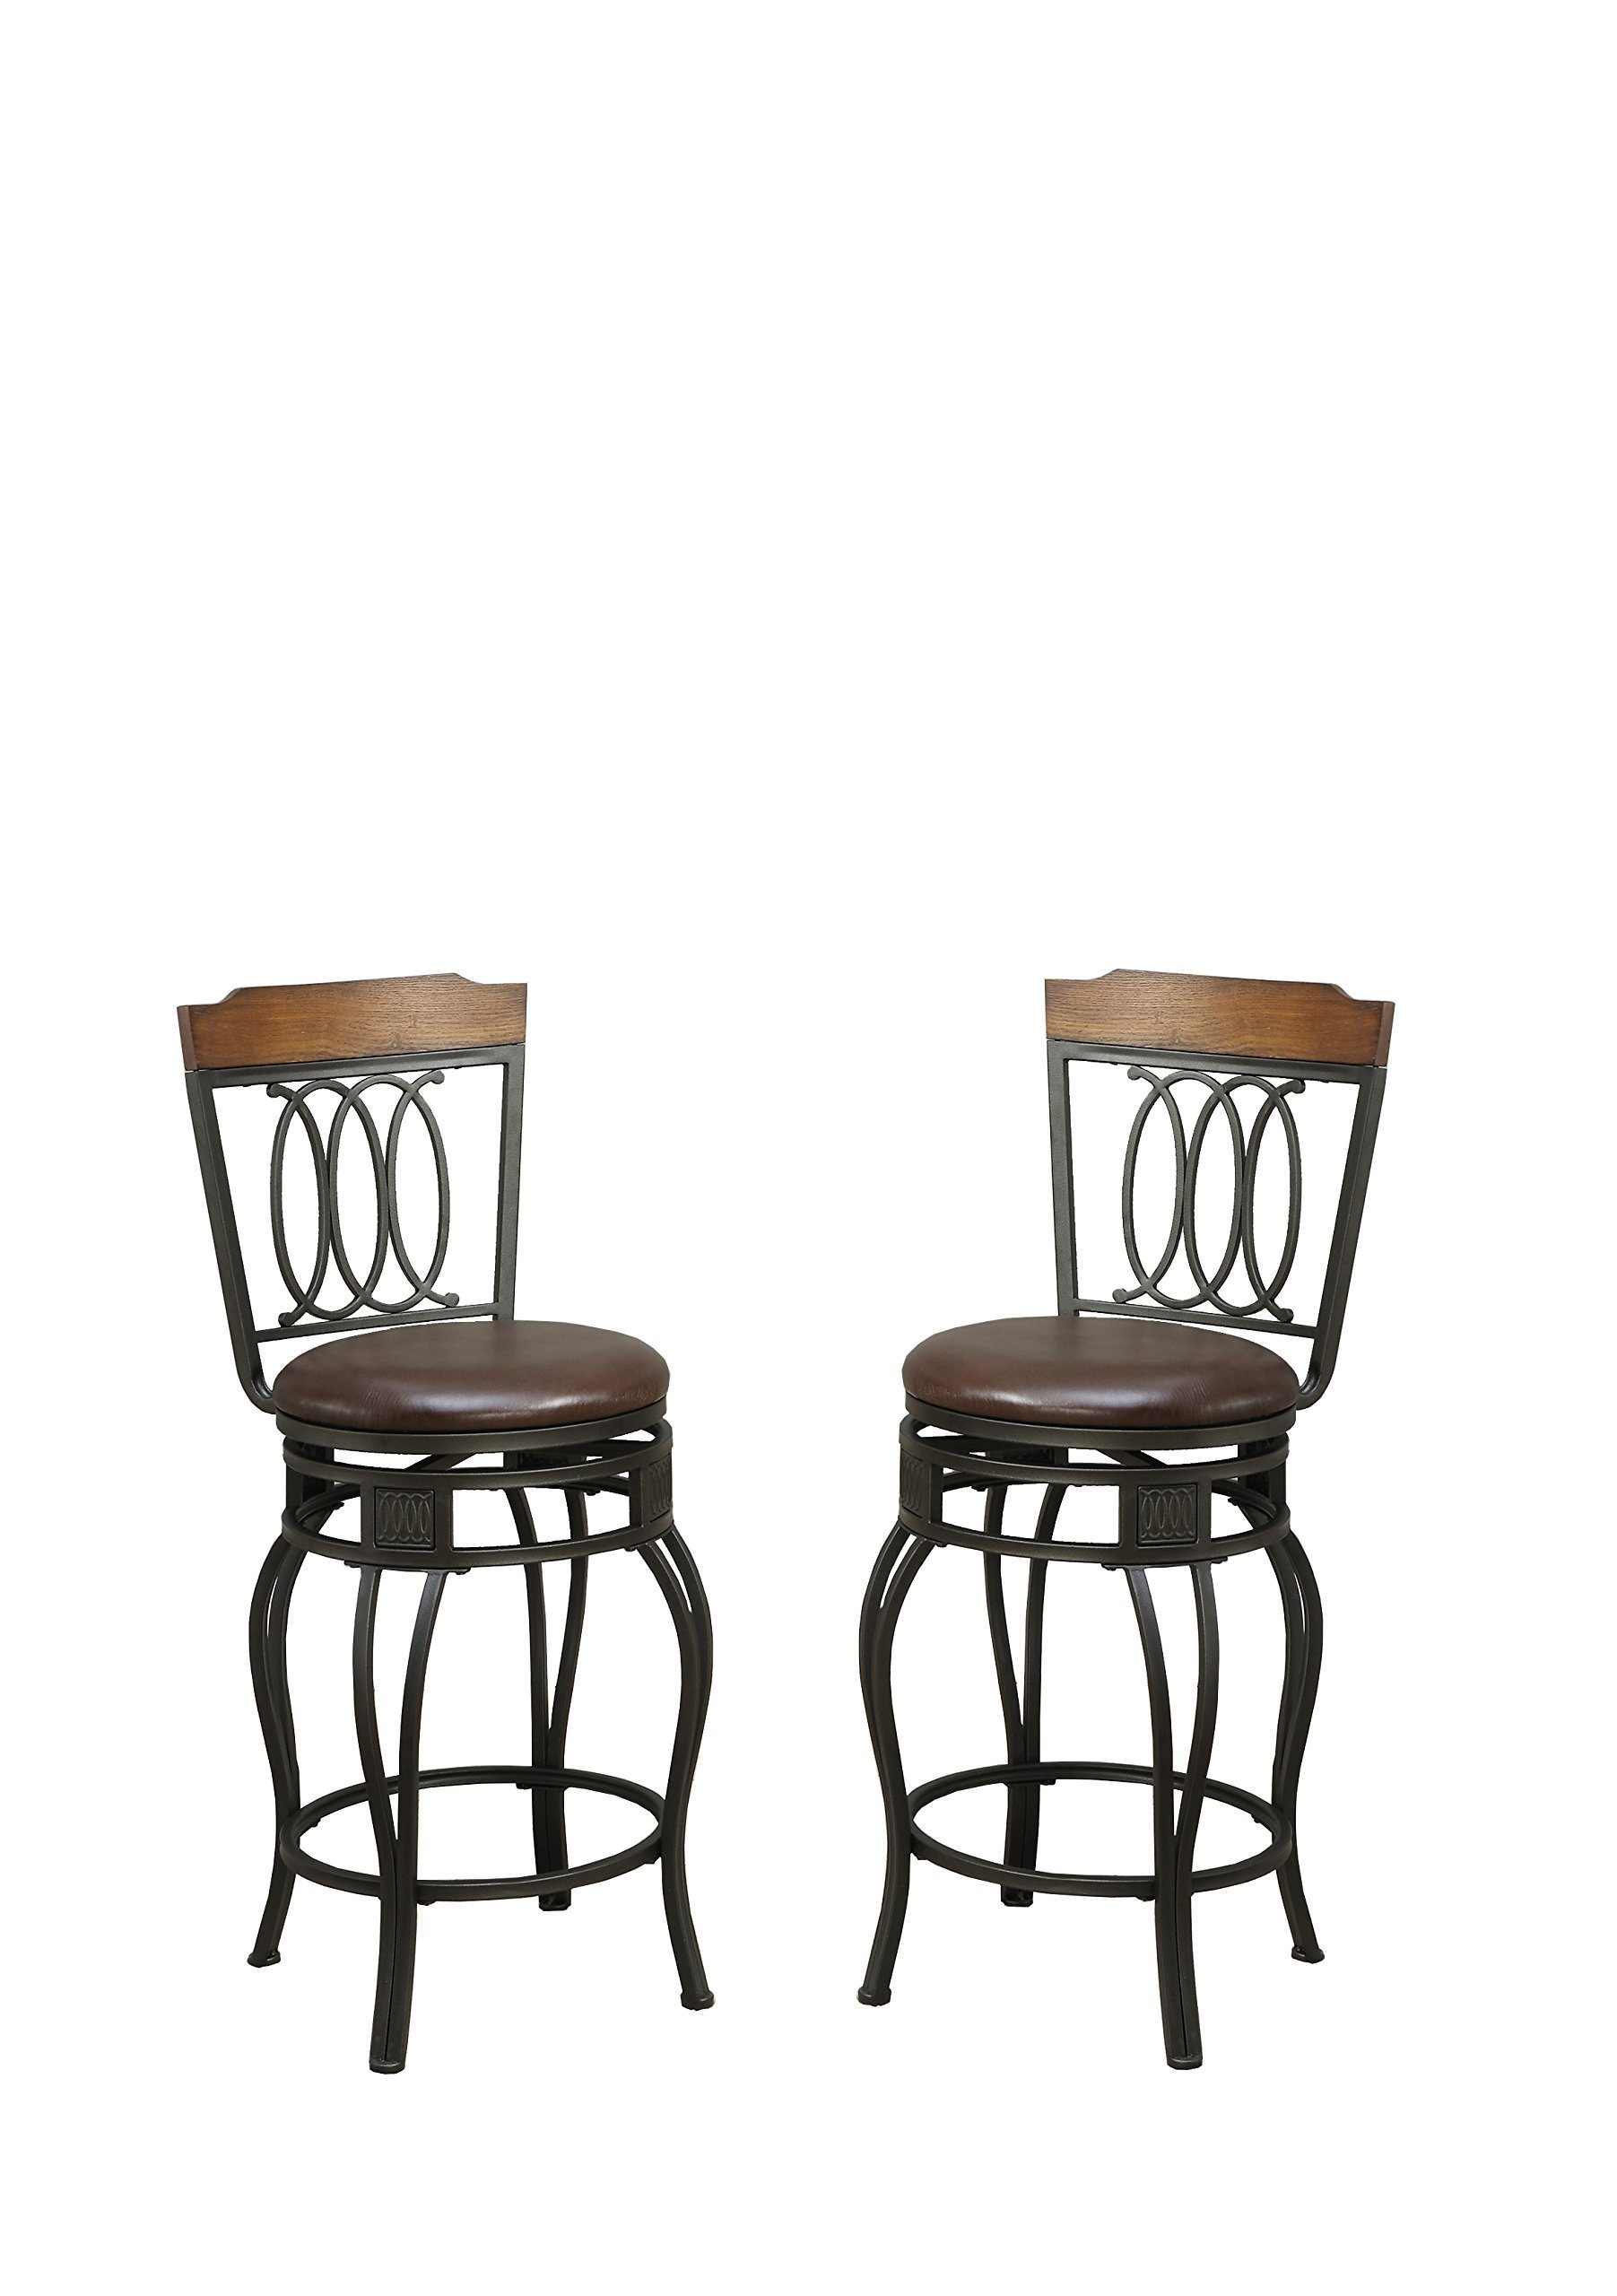 Poundex PDEX-F1523 Bobkona Earline 24'' Seat Height Swivel Bar Stool, Brown, Set of 2